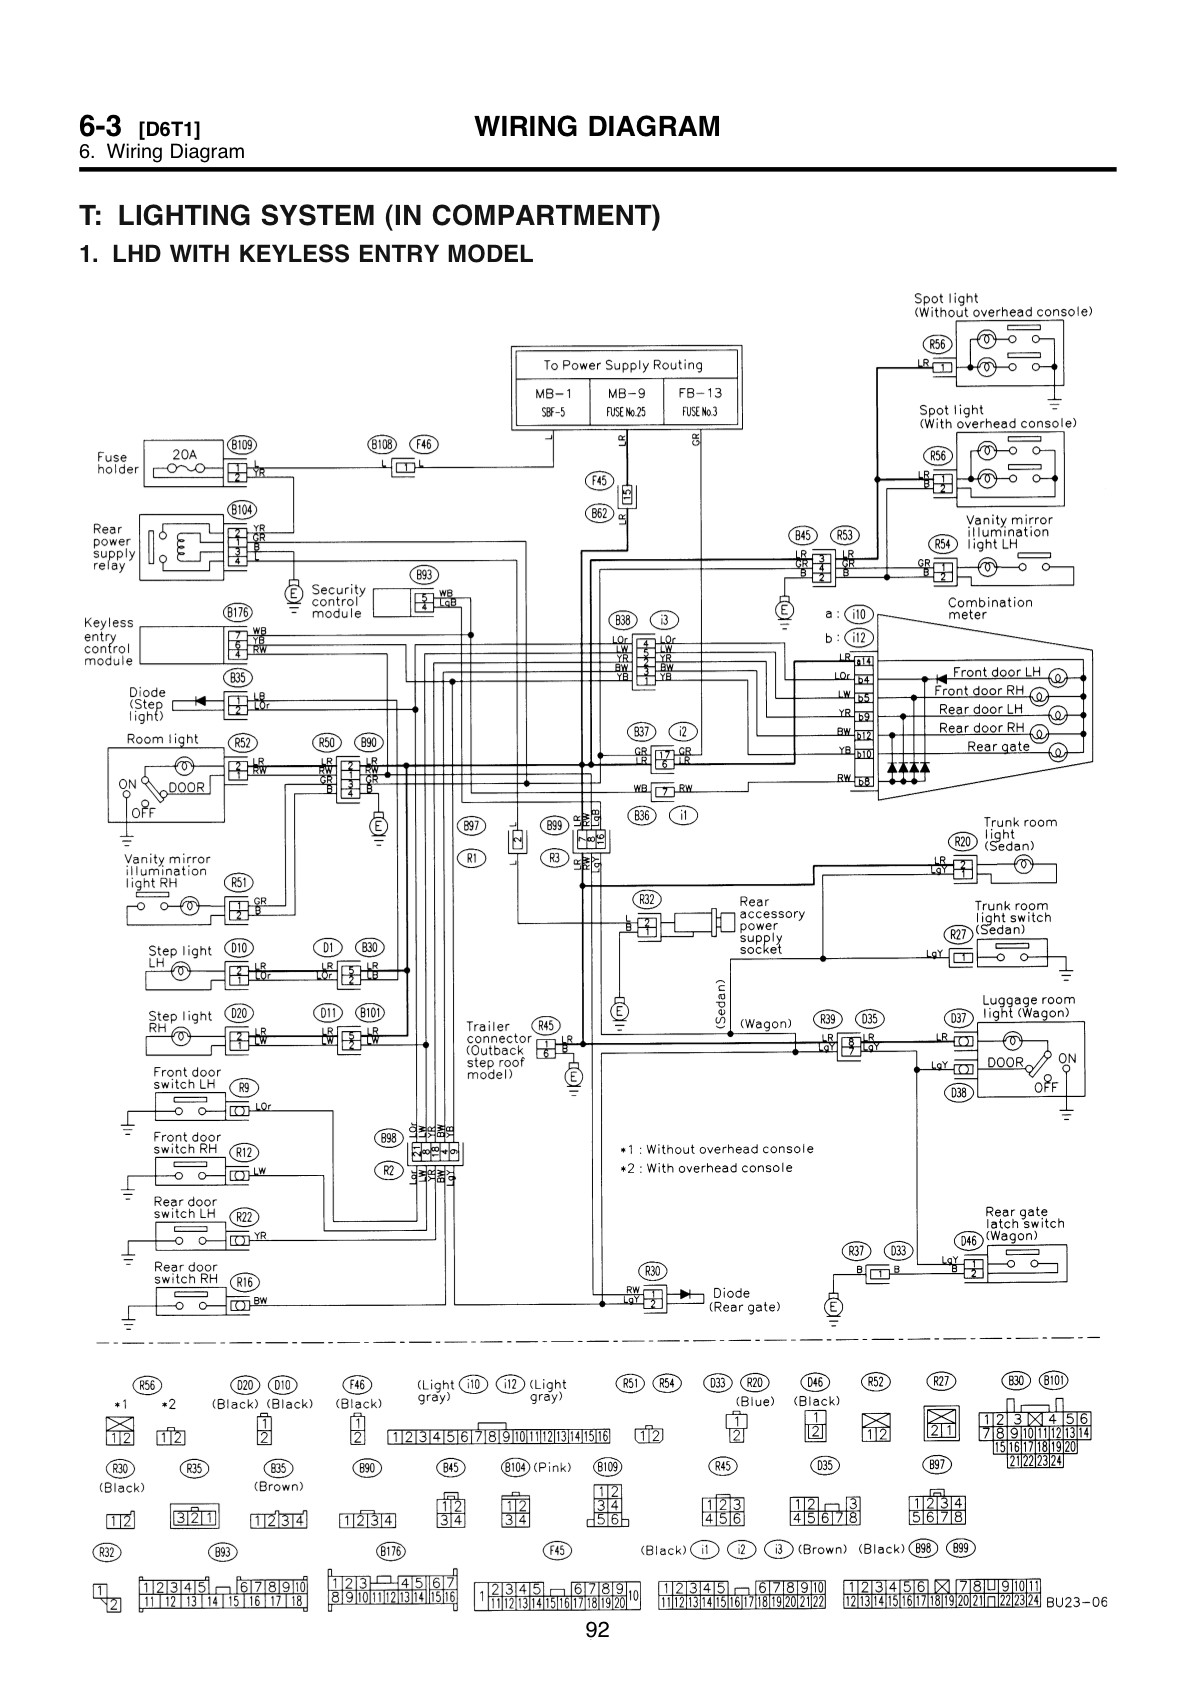 2005 subaru legacy radio wiring diagram rover 25 rear fog light 1997 engine my